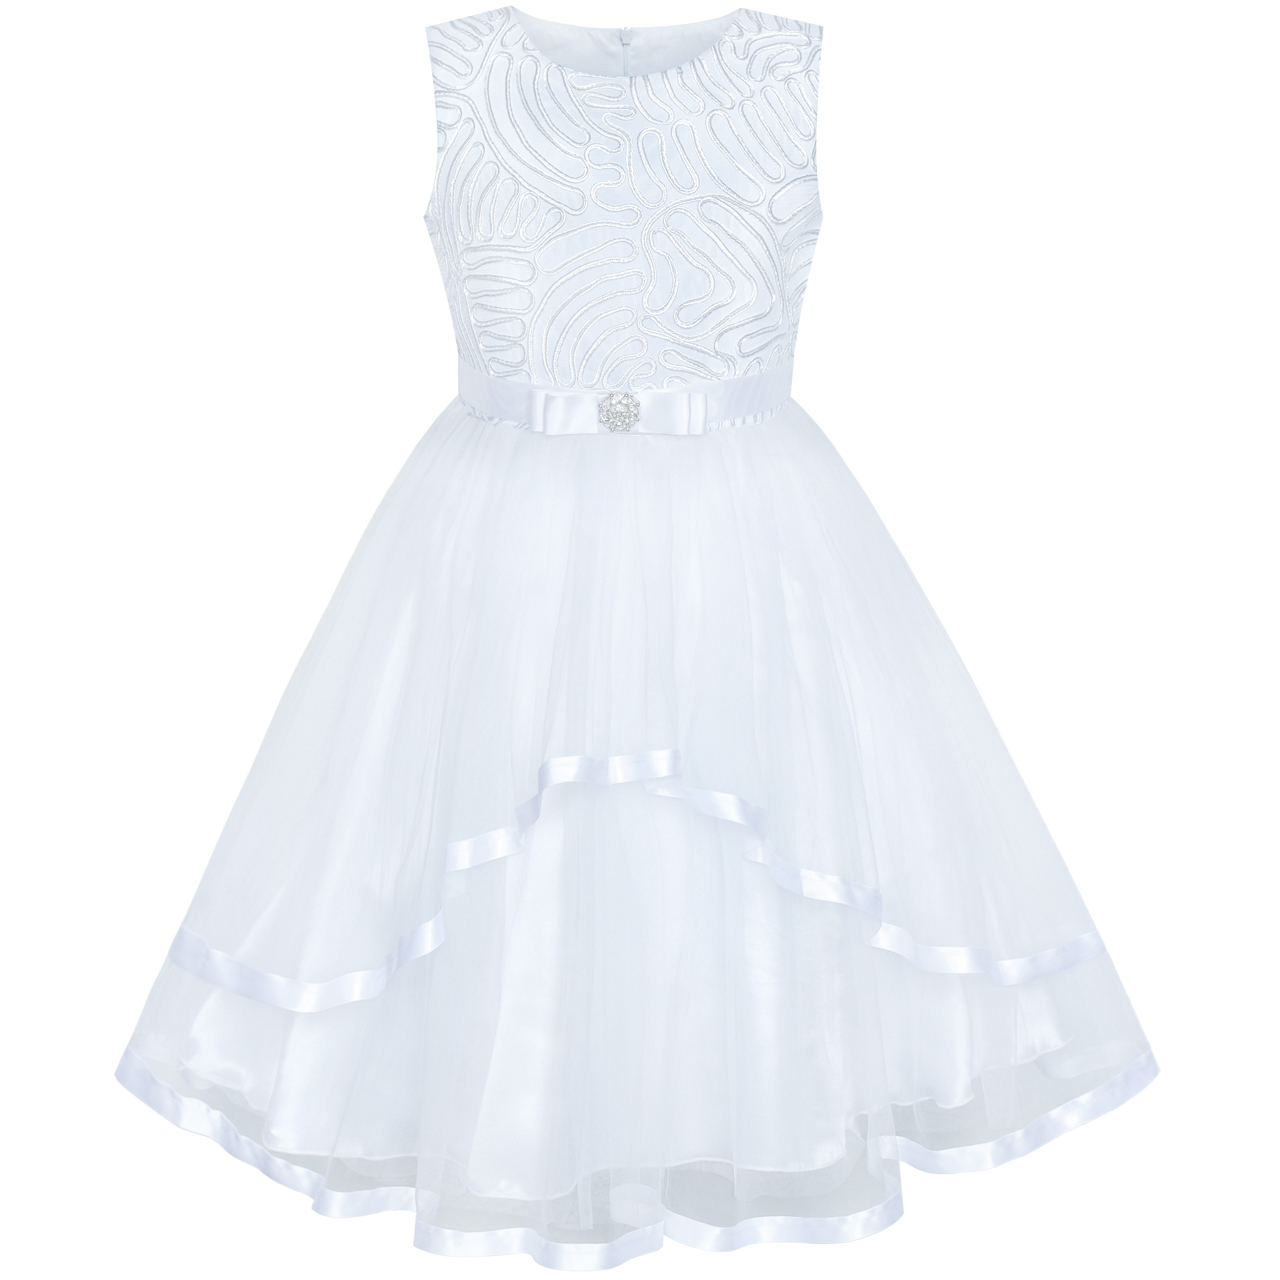 Flower Girl Dress White Wedding Party Dress Bridesmaid Summer Princess Dresses for Girls Clothes 4-12 Pageant Sundress prom dresses dresses for teenagers maxys wedding dress girl white satin summer dress girls size 12 party embroidery clothes